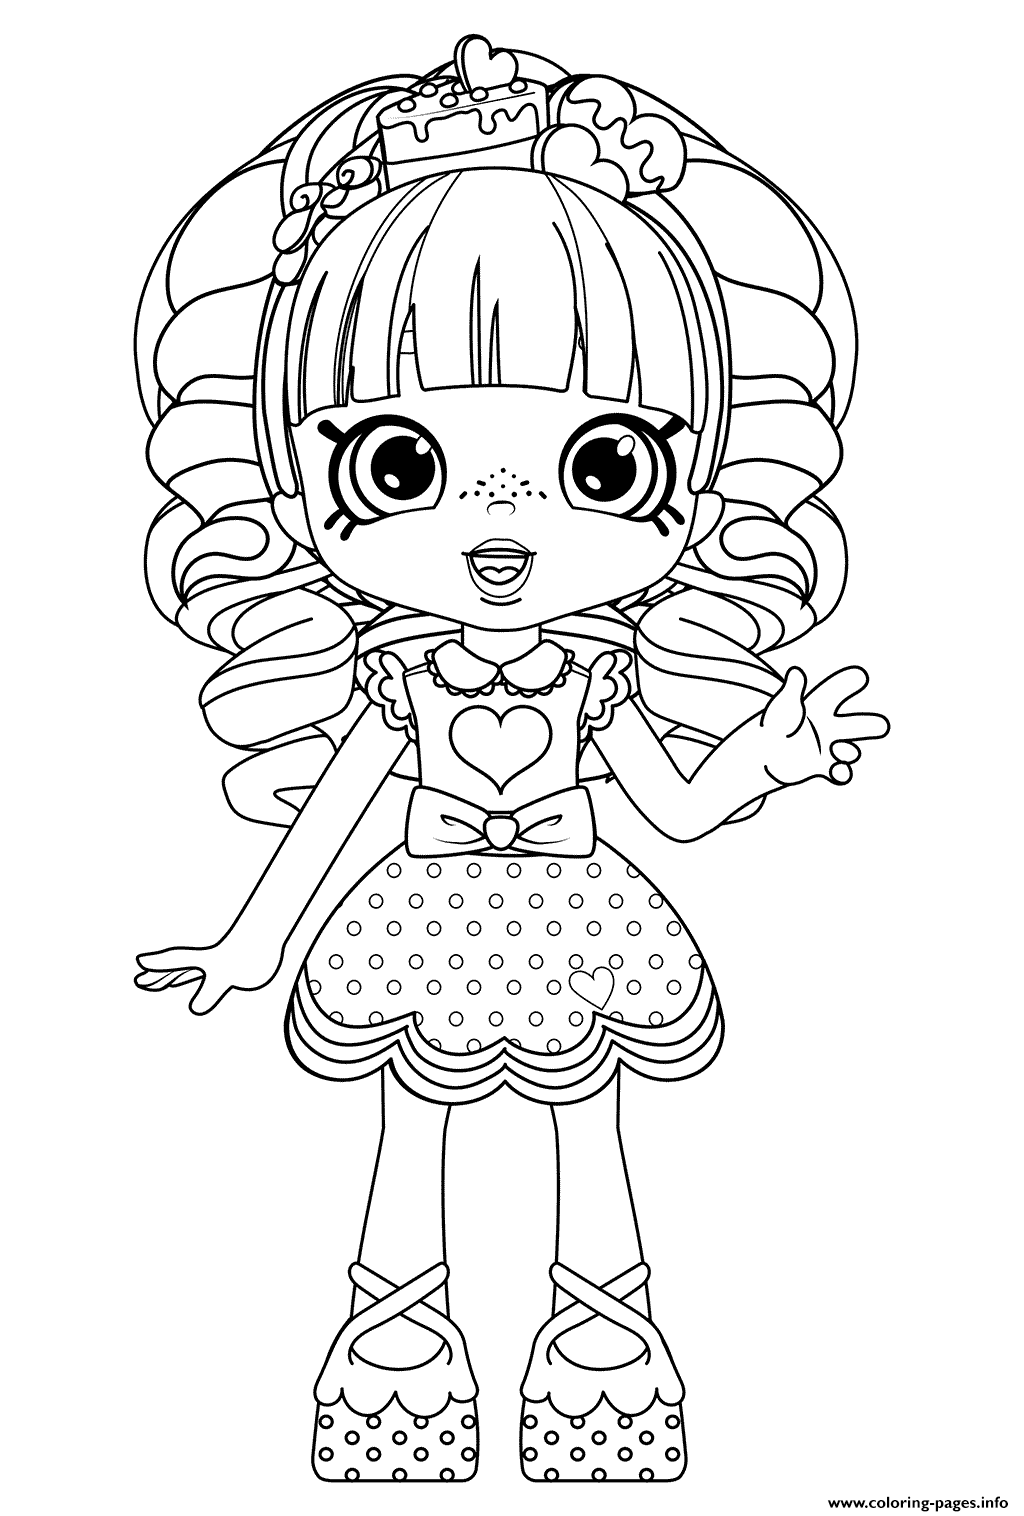 Rainbow Kate Shopkins Dolls Coloring Pages Printable